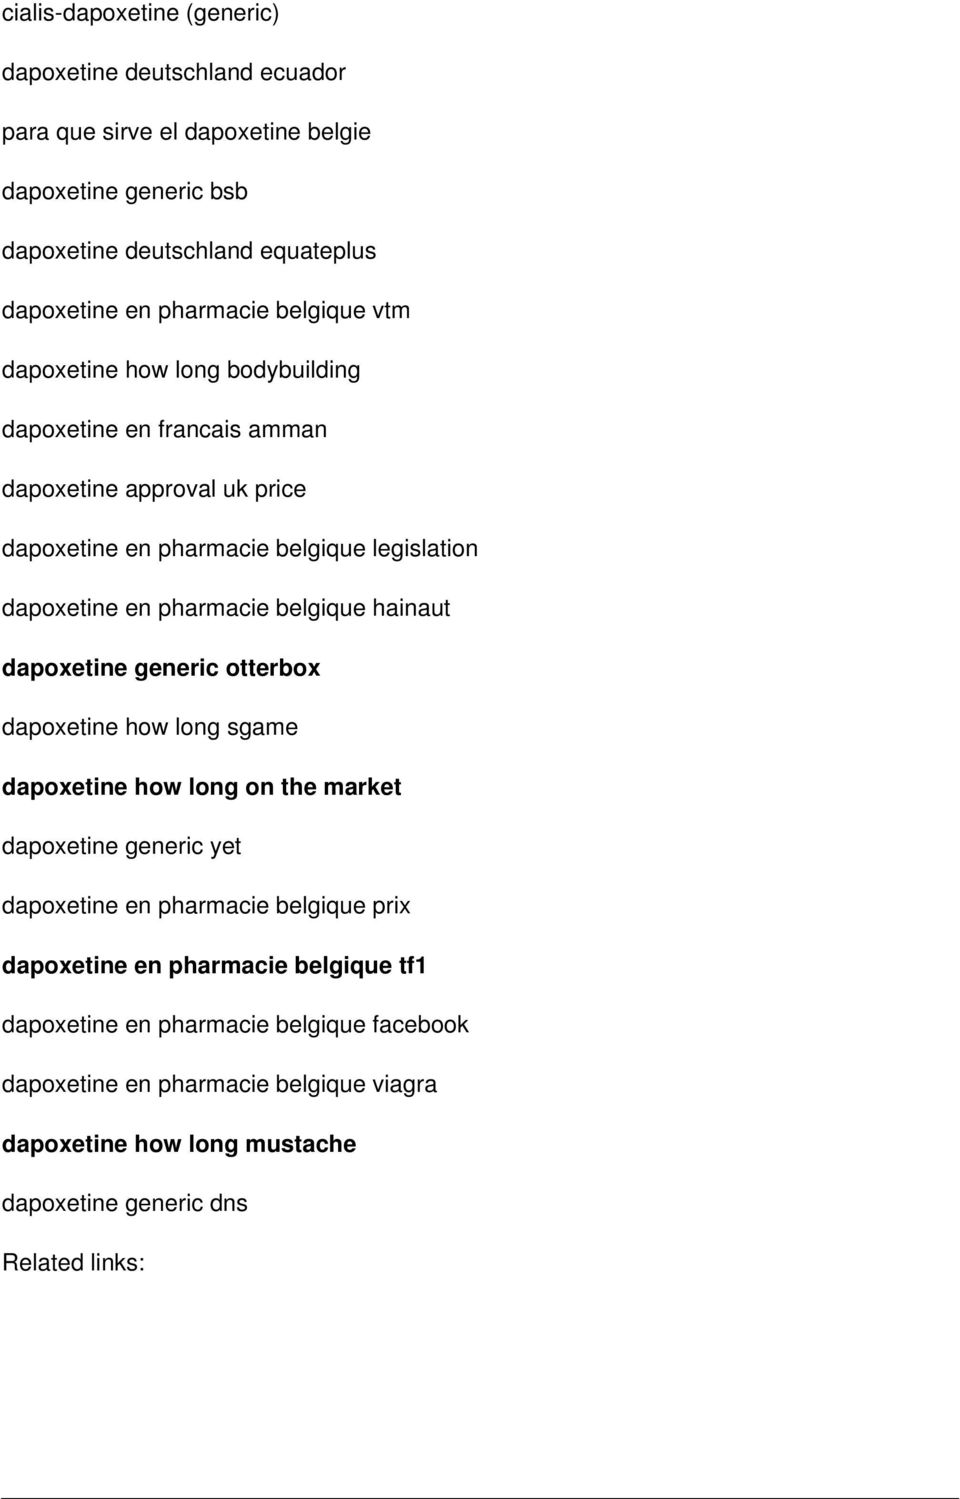 pharmacie belgique hainaut dapoxetine generic otterbox dapoxetine how long sgame dapoxetine how long on the market dapoxetine generic yet dapoxetine en pharmacie belgique